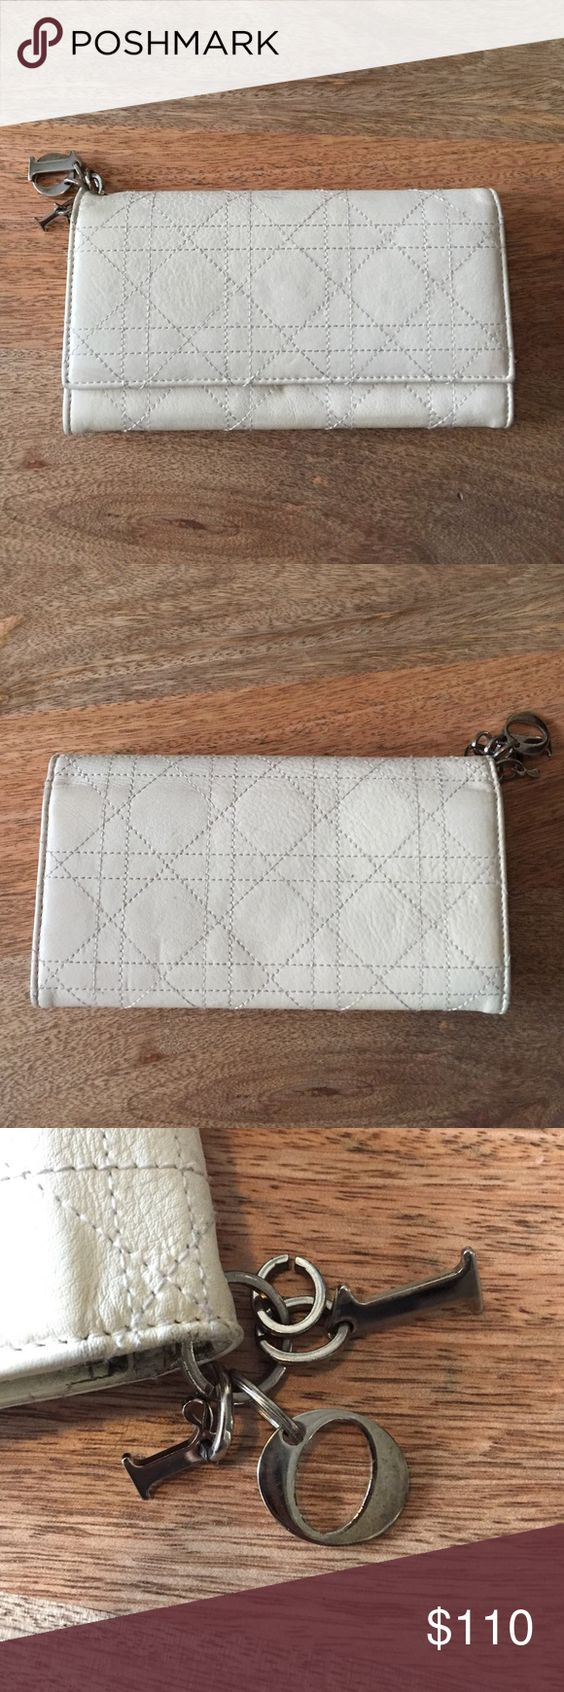 """authentic DIOR cannage quilted charm wallet ✨Preowned Dior wallet bought at Saks back in 2007. %. authentic. 7"""" length 4"""" height. The condition overall is great and has no tears or odor. I took care of the wallet and only used it for a few months. The 1 problem this wallet has is the gunmetal DIOR charms on the corner of wallet is MISSING the """"D"""" because ring got loose. Therefore the charms only have the """"I"""" """"o"""" and """"r"""". Edges show wear. Doesn't come with box or dust bag. Check out my closet…"""